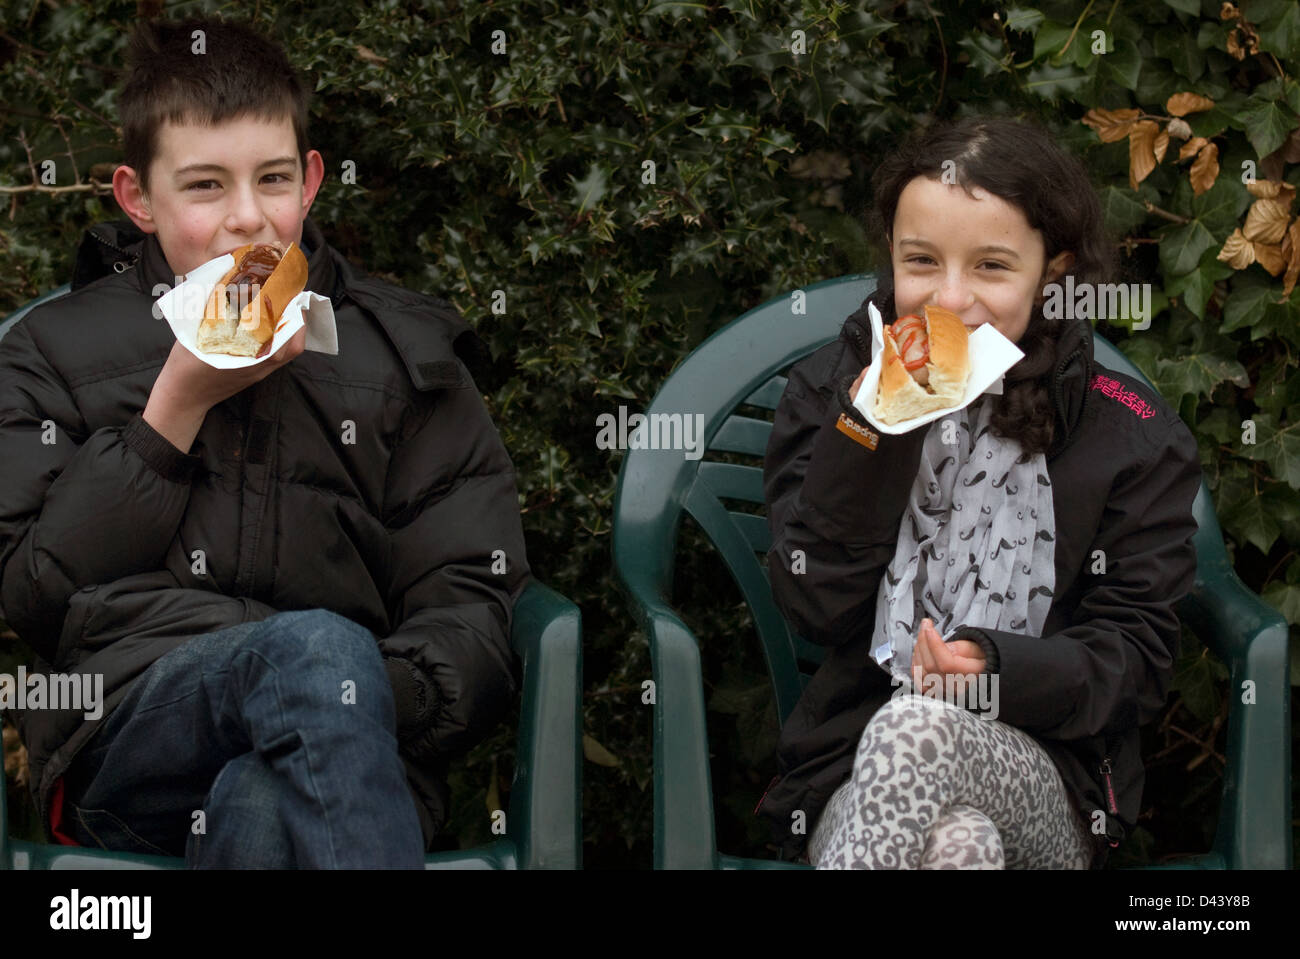 Two youngsters eating hot dogs at Farnham Farmers' Market, Farnham, Surrey, UK. - Stock Image